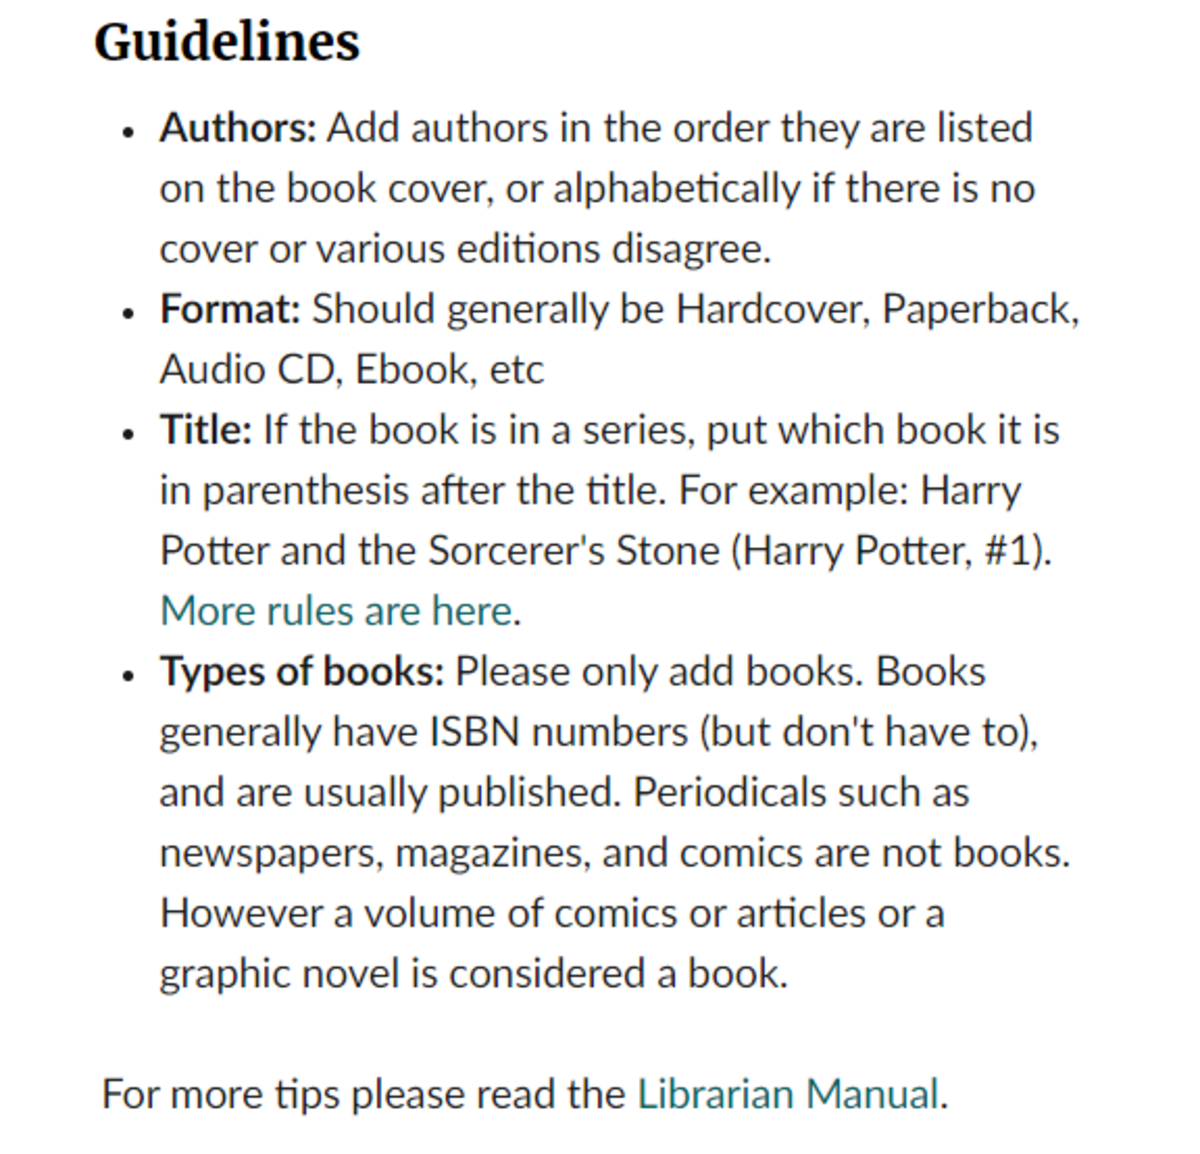 Guidelines for adding a new book manually on Goodreads